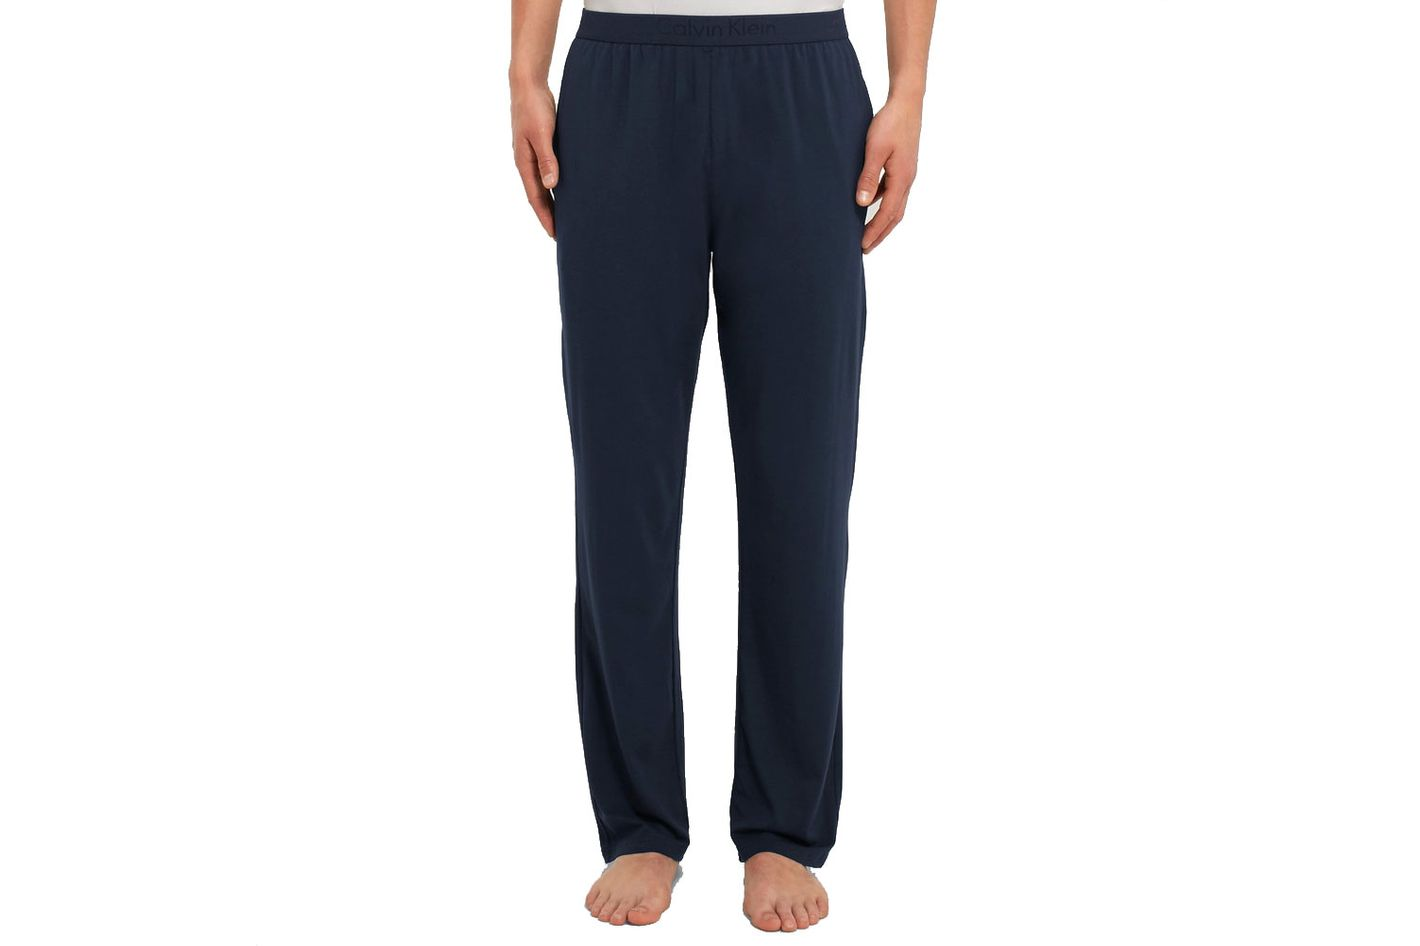 Calvin Klein Underwear Infinite Stretch Pyjama Trousers